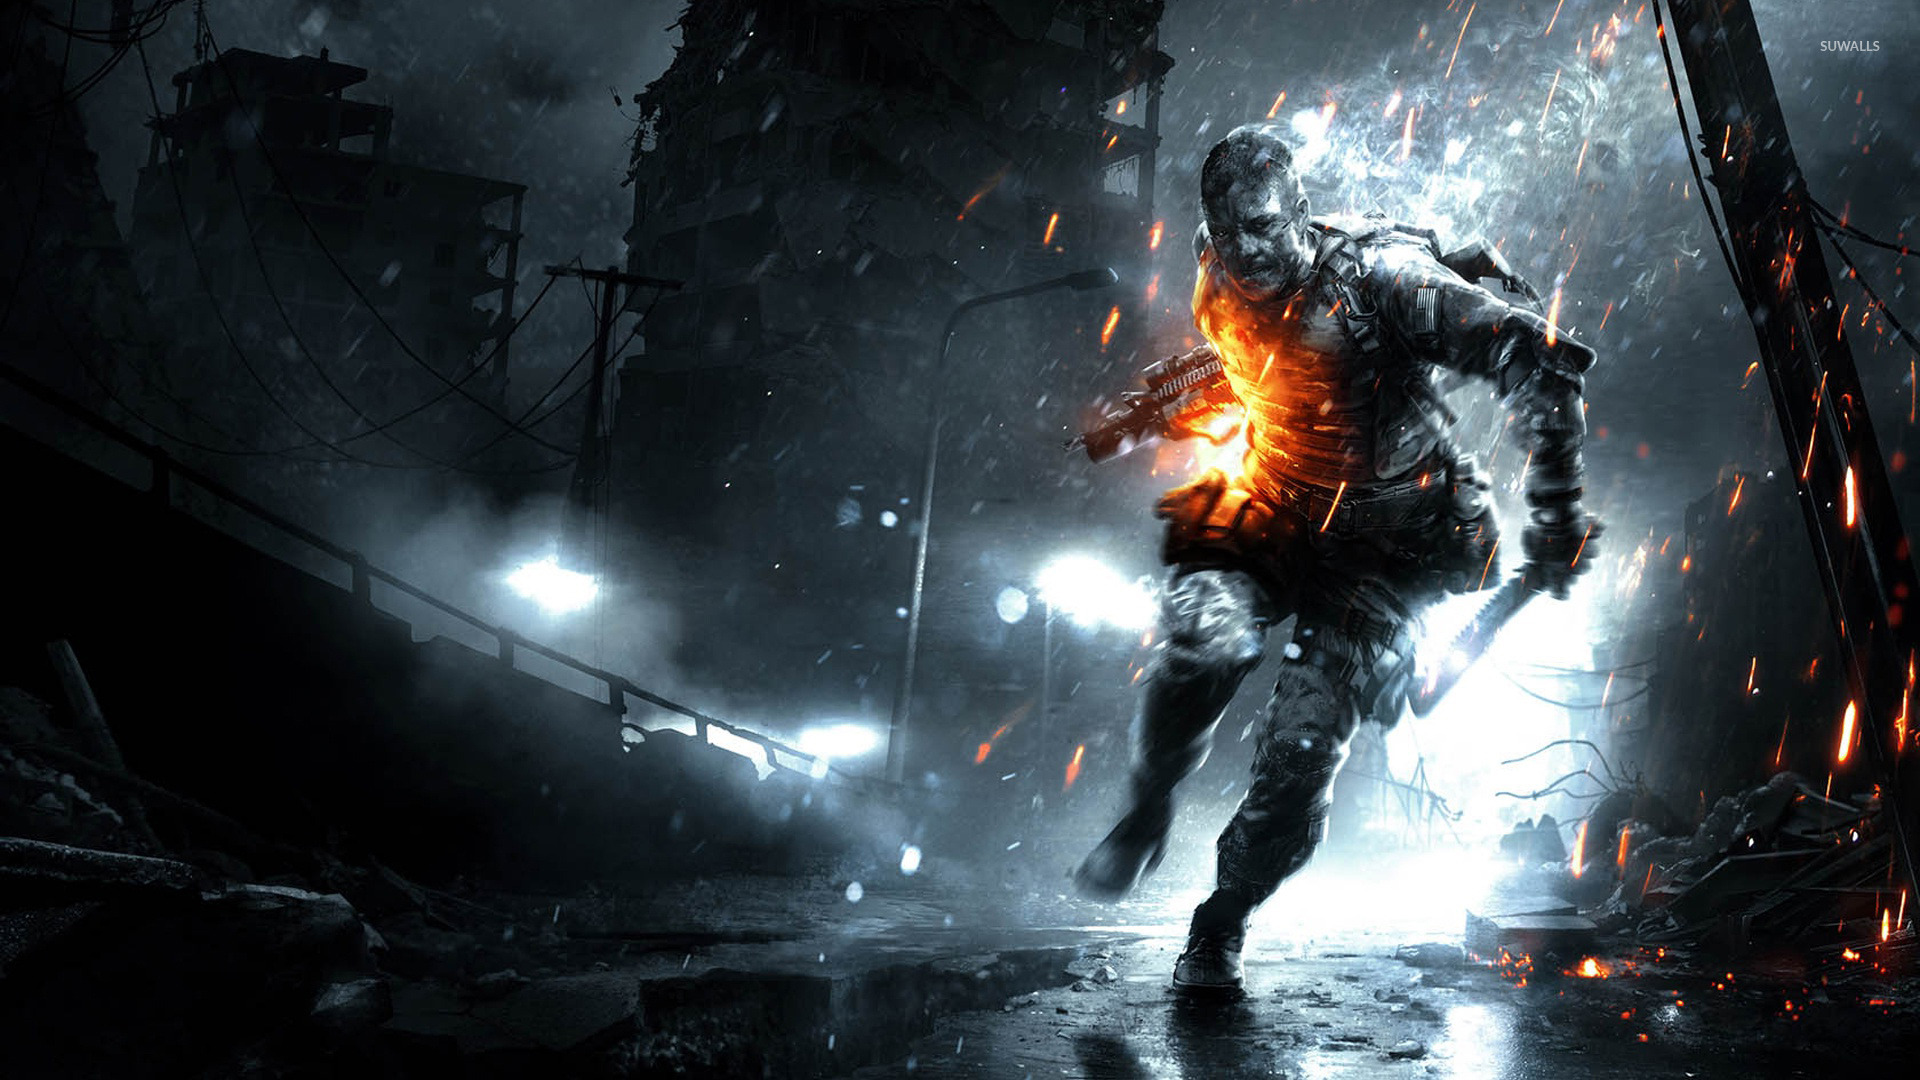 battlefield 3 [3] wallpaper - game wallpapers - #17066